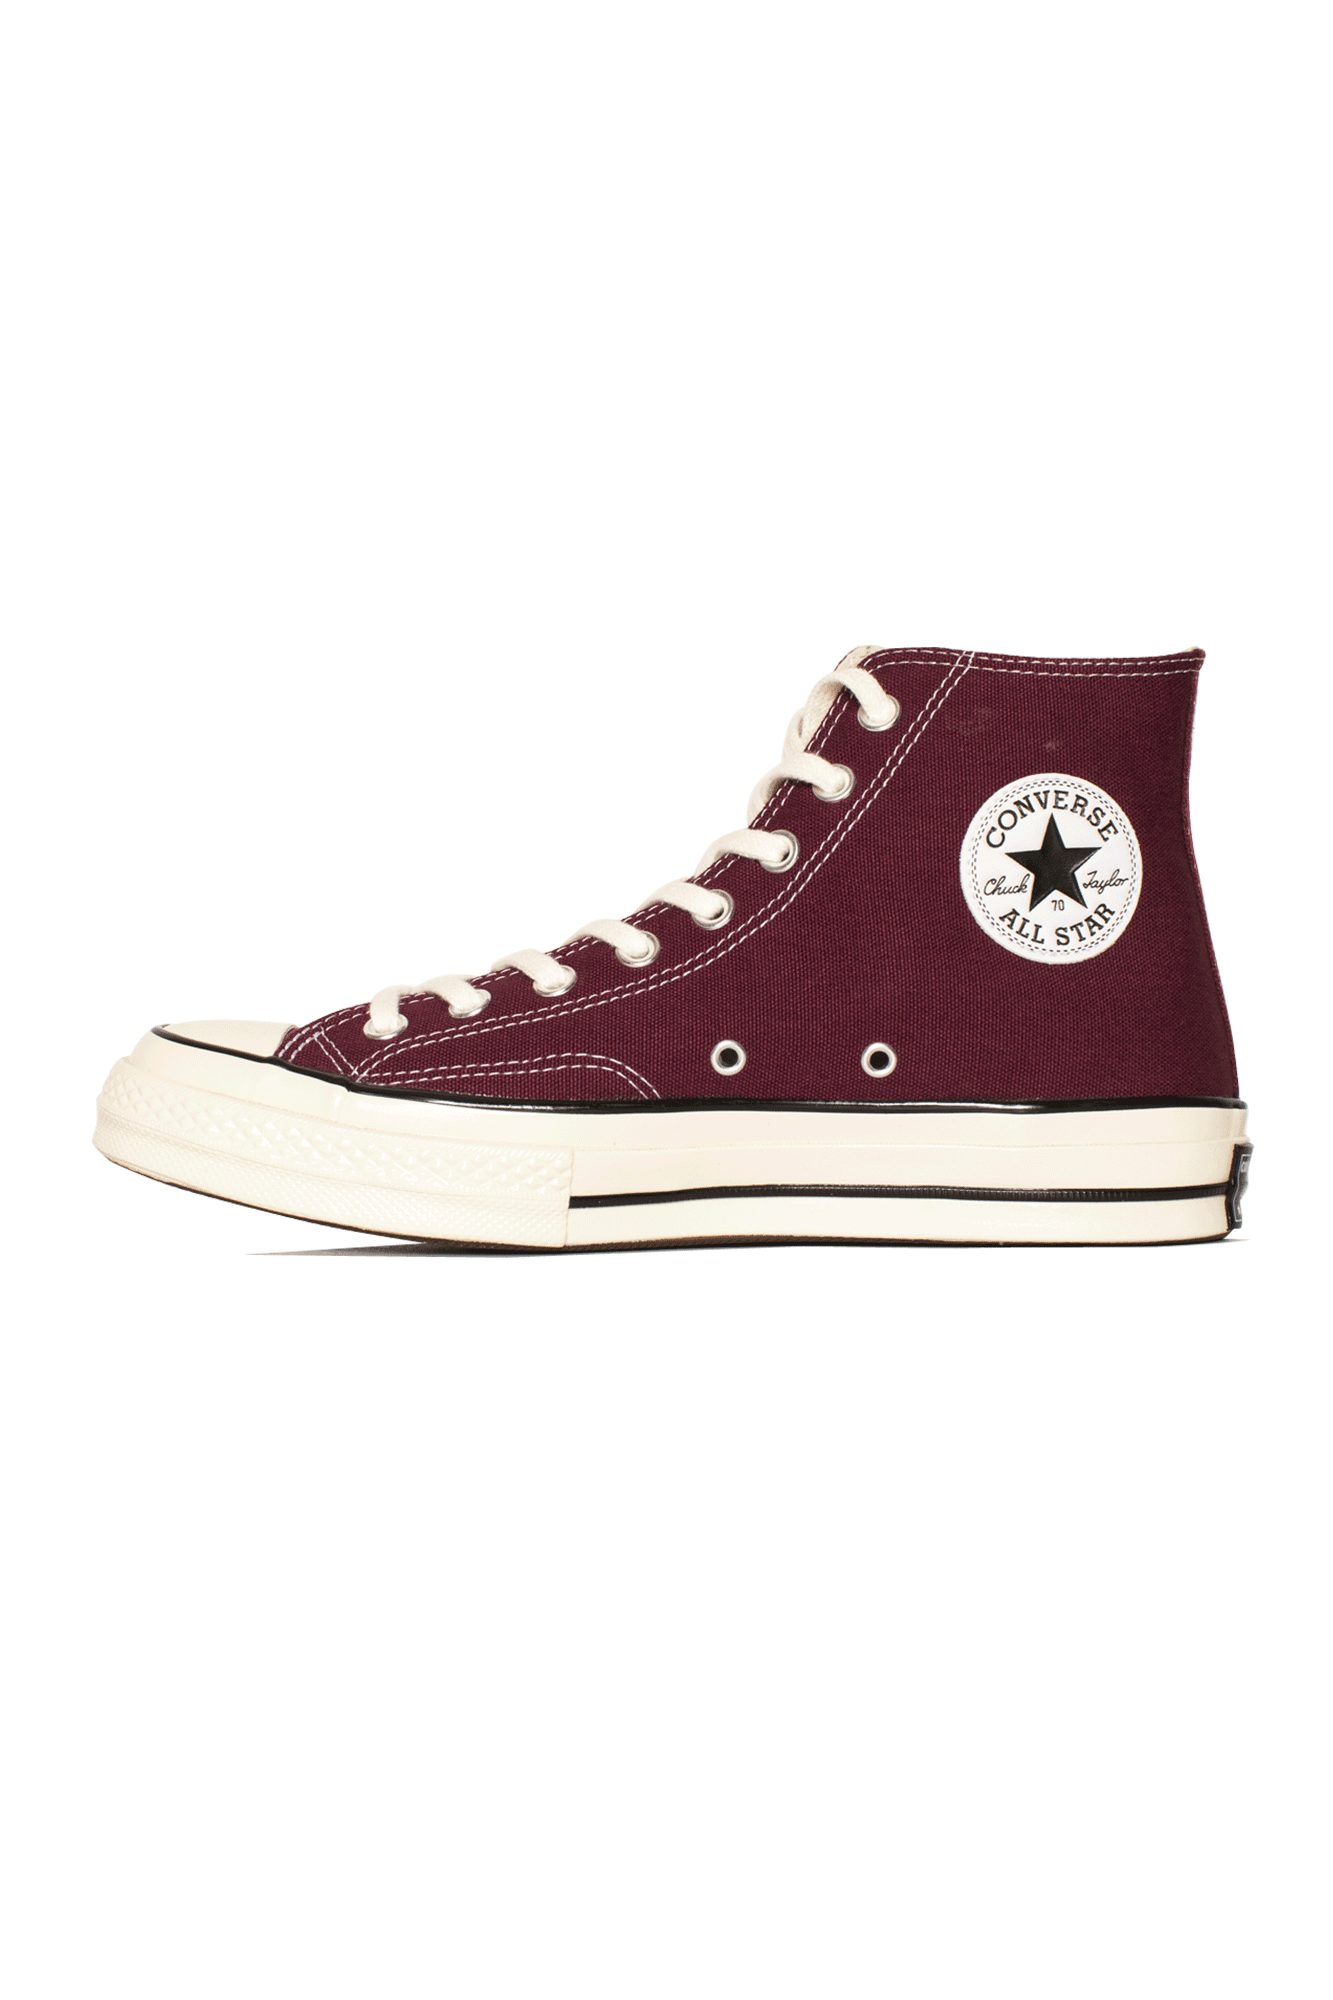 Converse Sneakers Chuck 70 Hi Red 162051C#000#C0012#6,5 - One Block Down